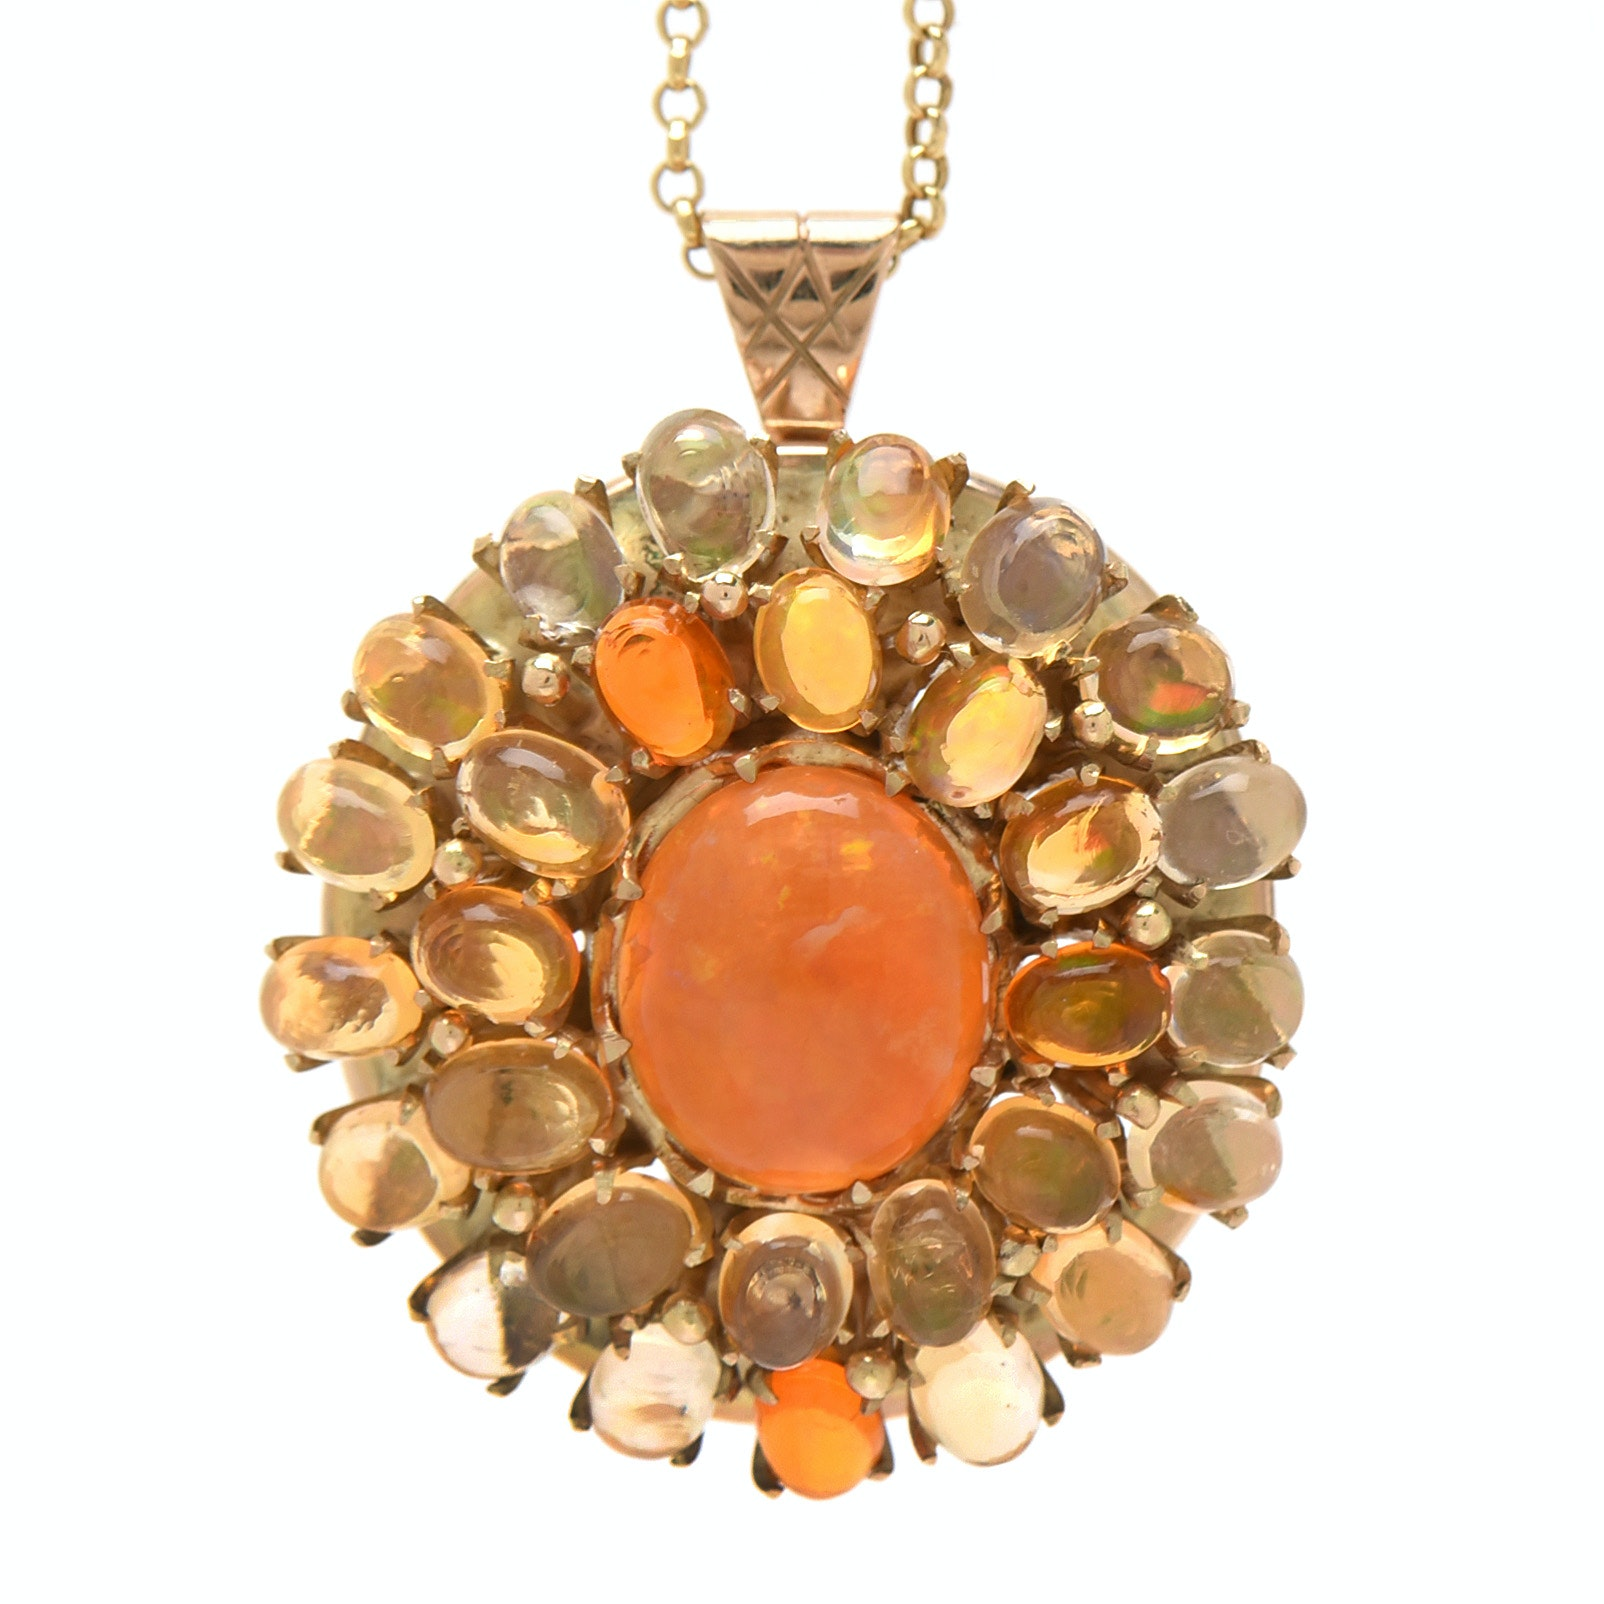 14K Yellow Gold Fire Jelly Opal Pendant Necklace